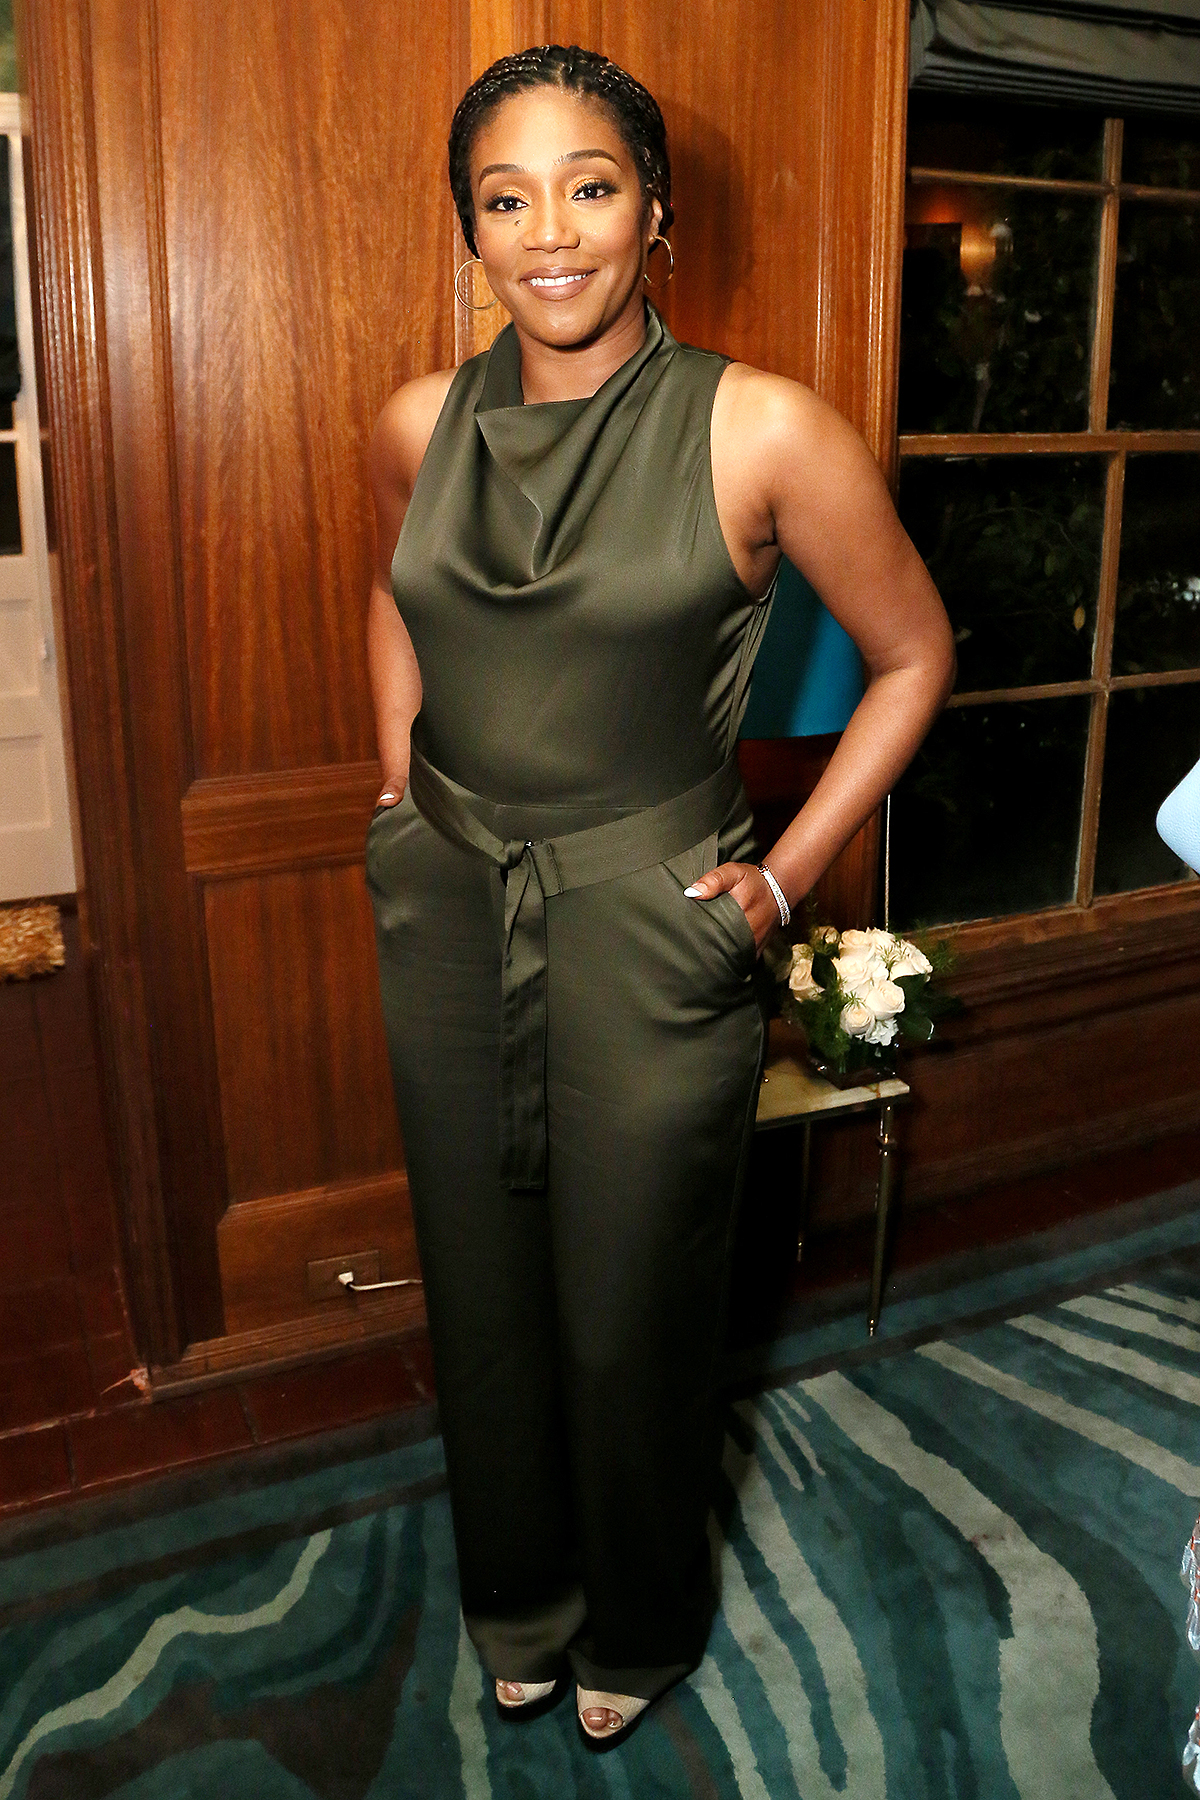 Tiffany Haddish attends Alfre Woodard's 11th Annual Sistahs' Soirée at The Private Residence of Jonas Tahlin, CEO of Absolut Elyx on February 05, 2020